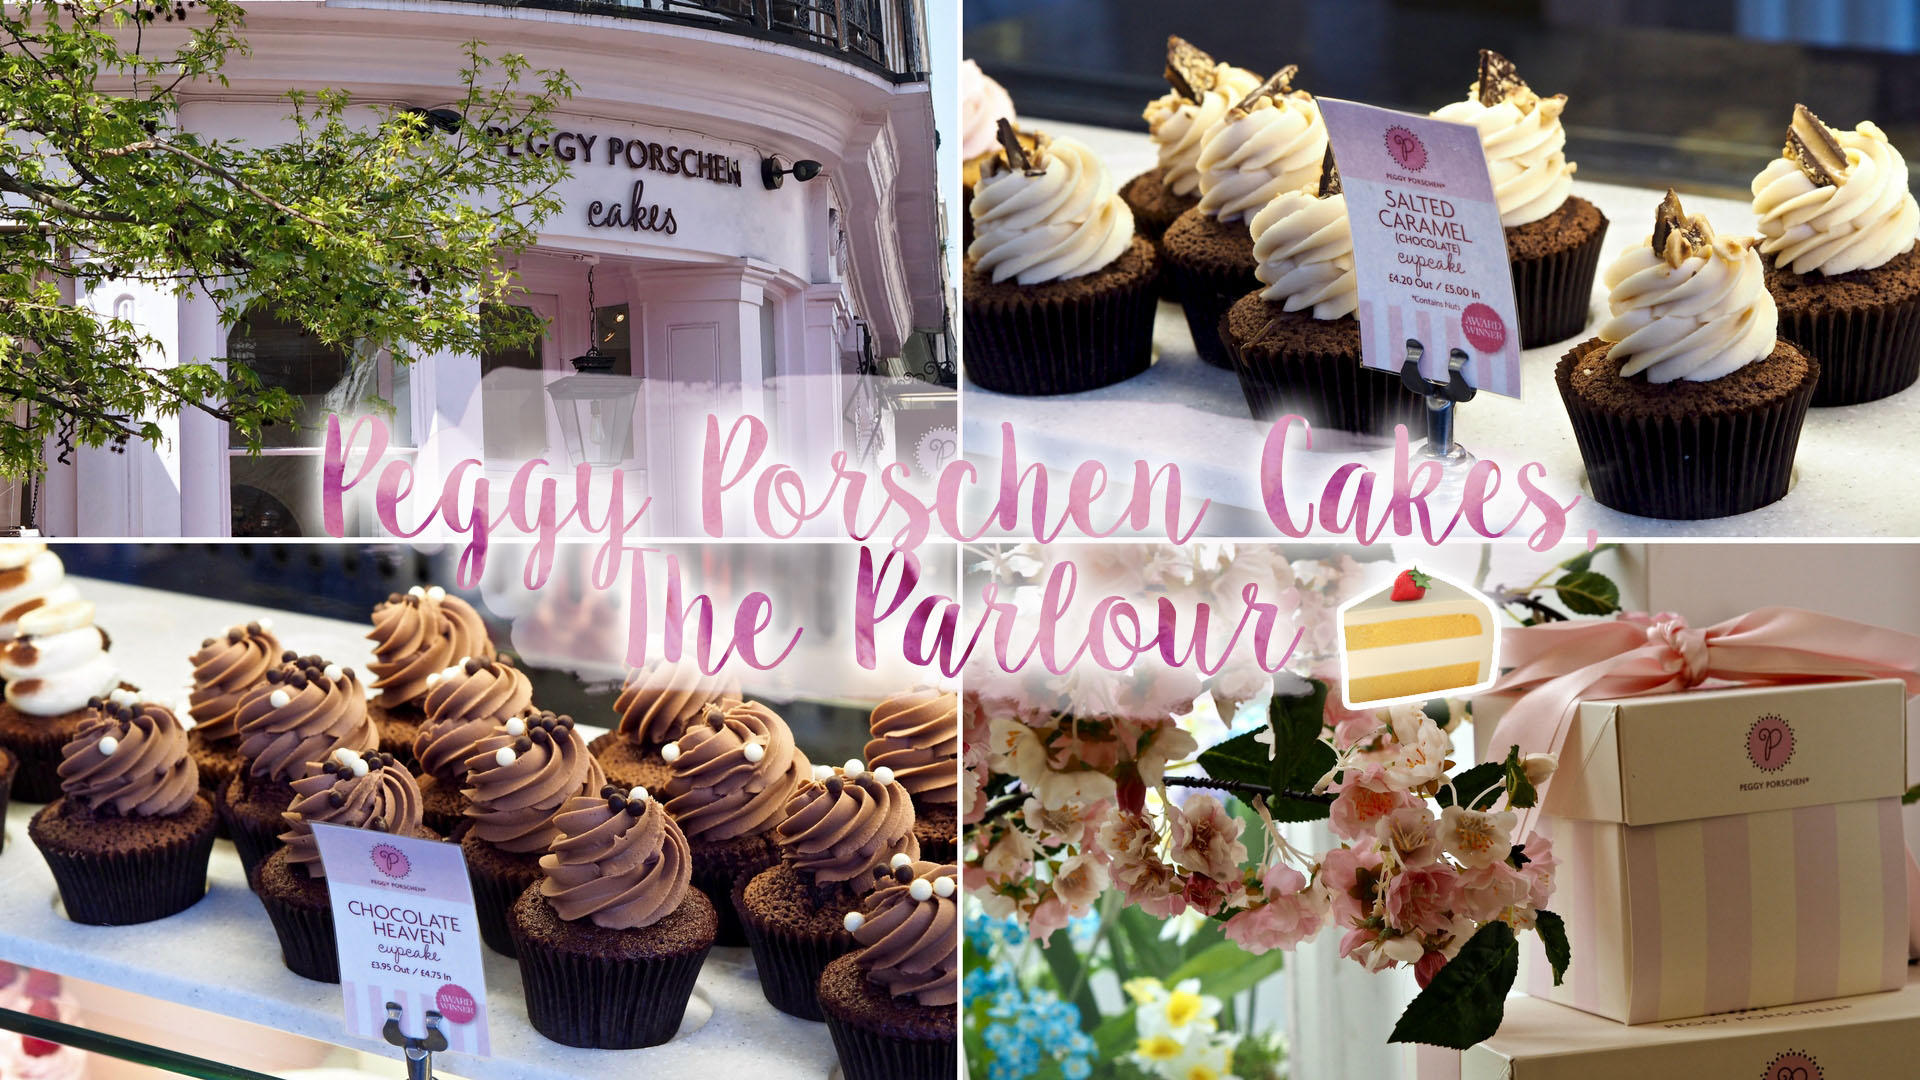 Peggy Porschen, The Parlour - Belgravia || London